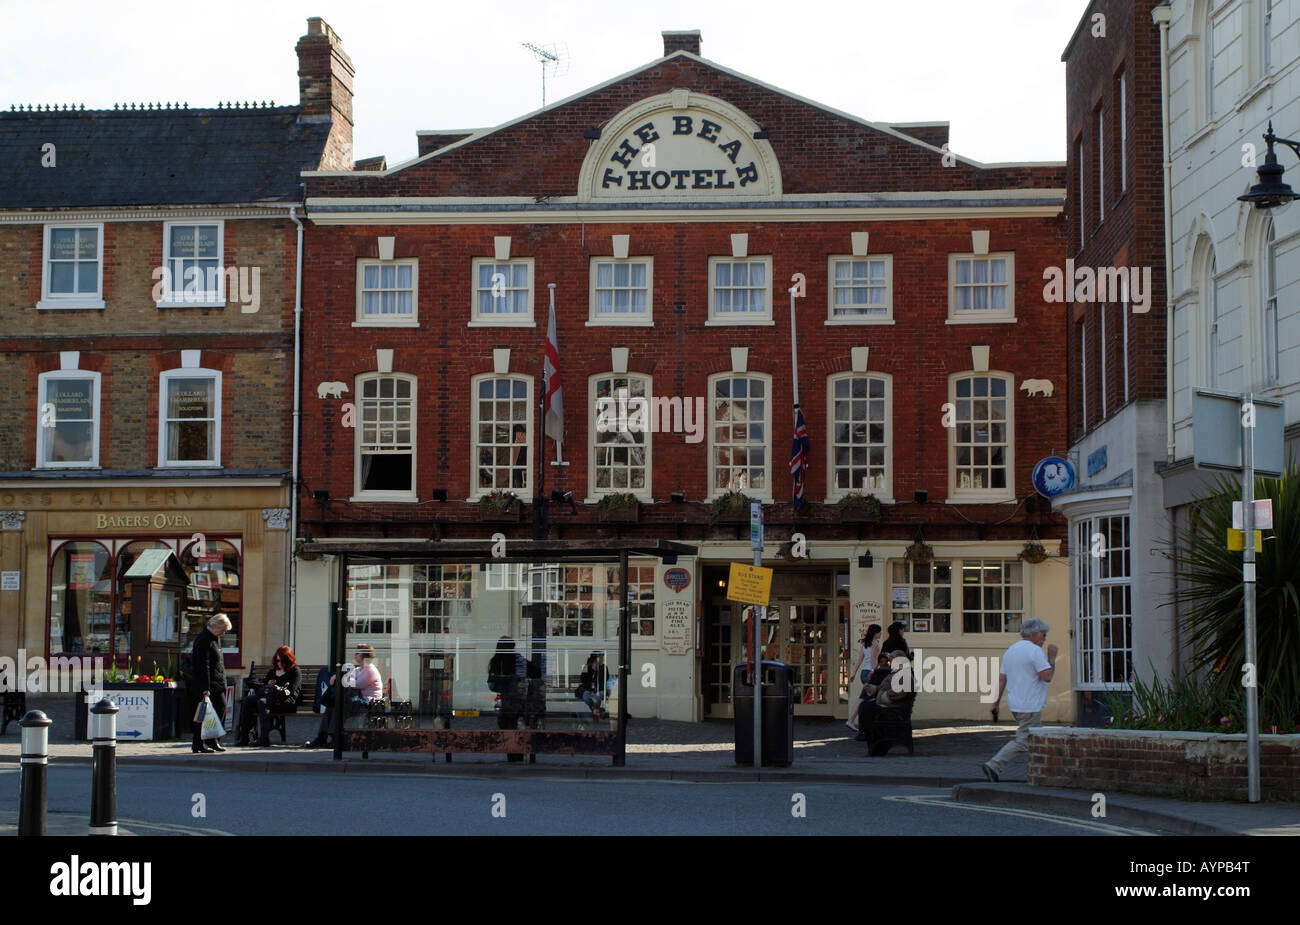 The Bear Hotel Wantage Town Centre Wantage Oxfordshire England - Stock Image